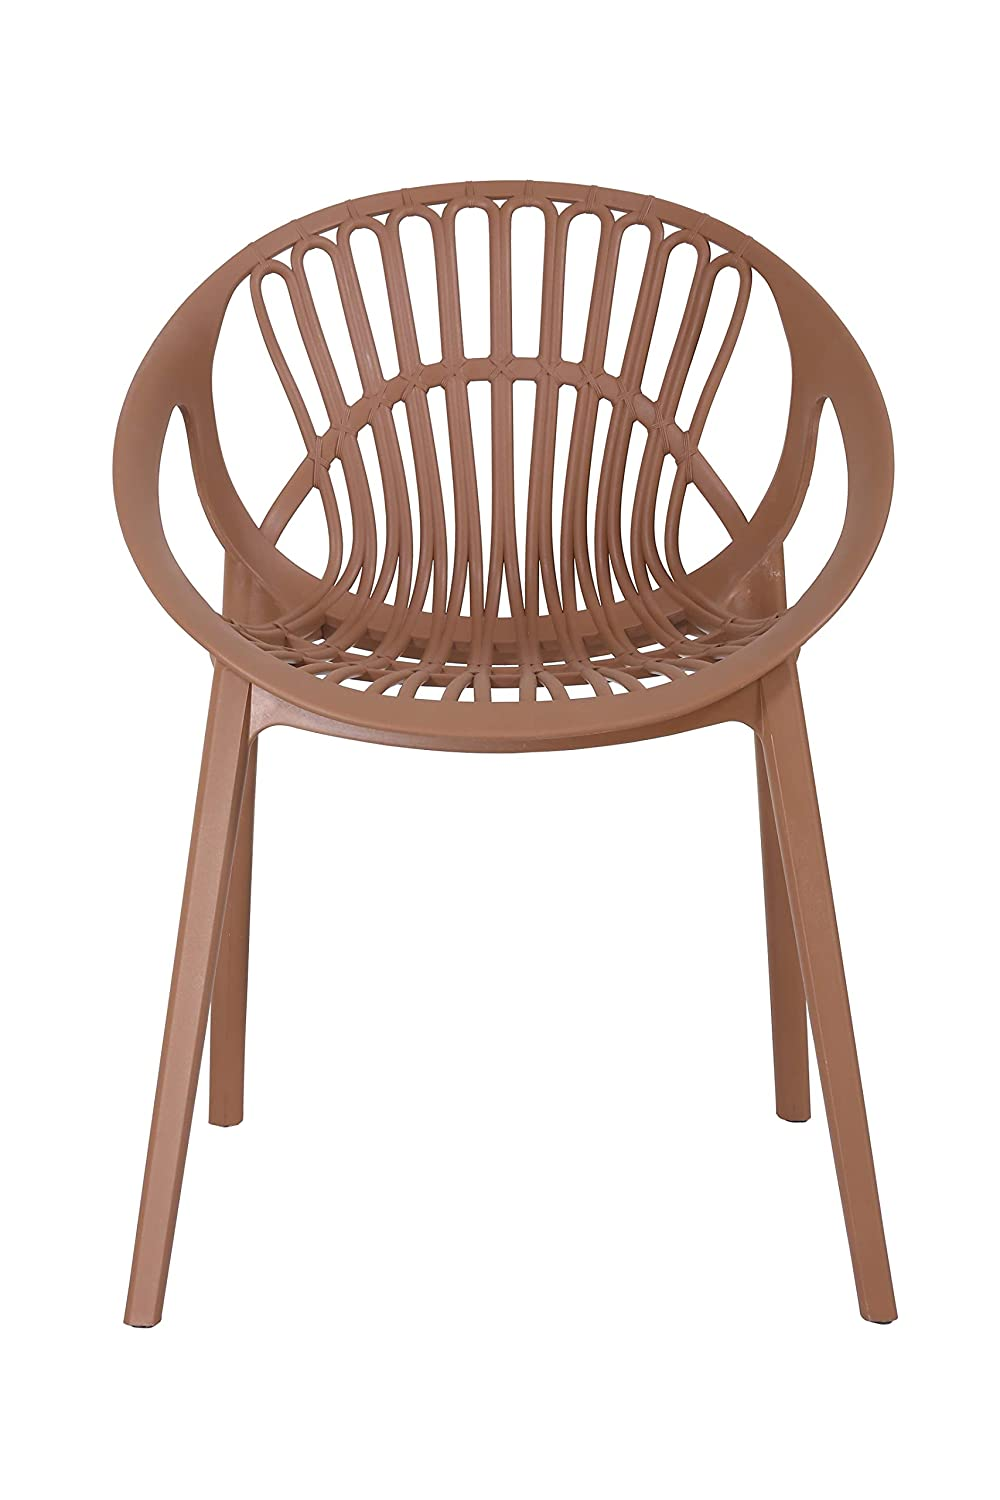 Innowin Olive Garden Chairs Indoor Outdoor Use Chair Chairs For Restaurants Chairs For Dining Room Cafe Pack Of 1 Brown Amazon In Home Kitchen